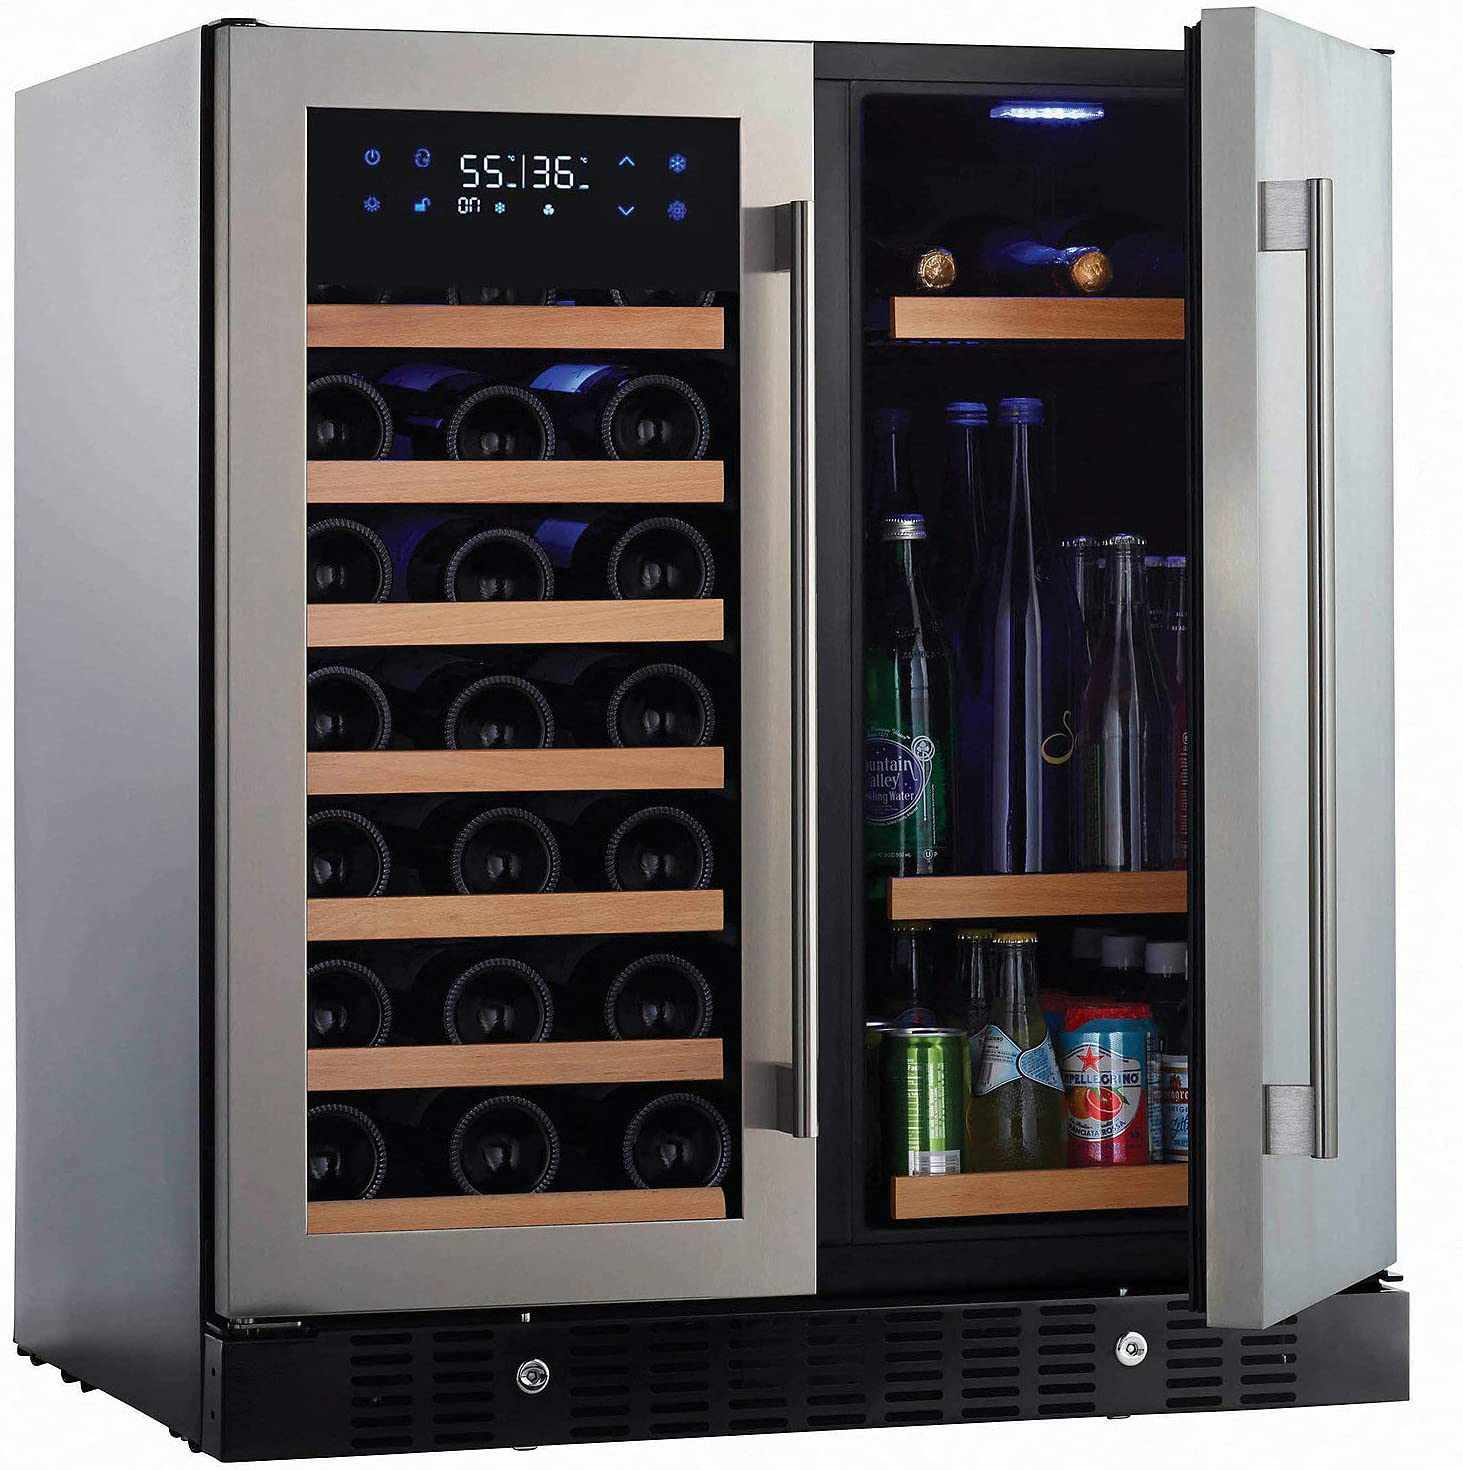 N'FINITY PRO HDX Wine and Beverage Center by Wine Enthusiast